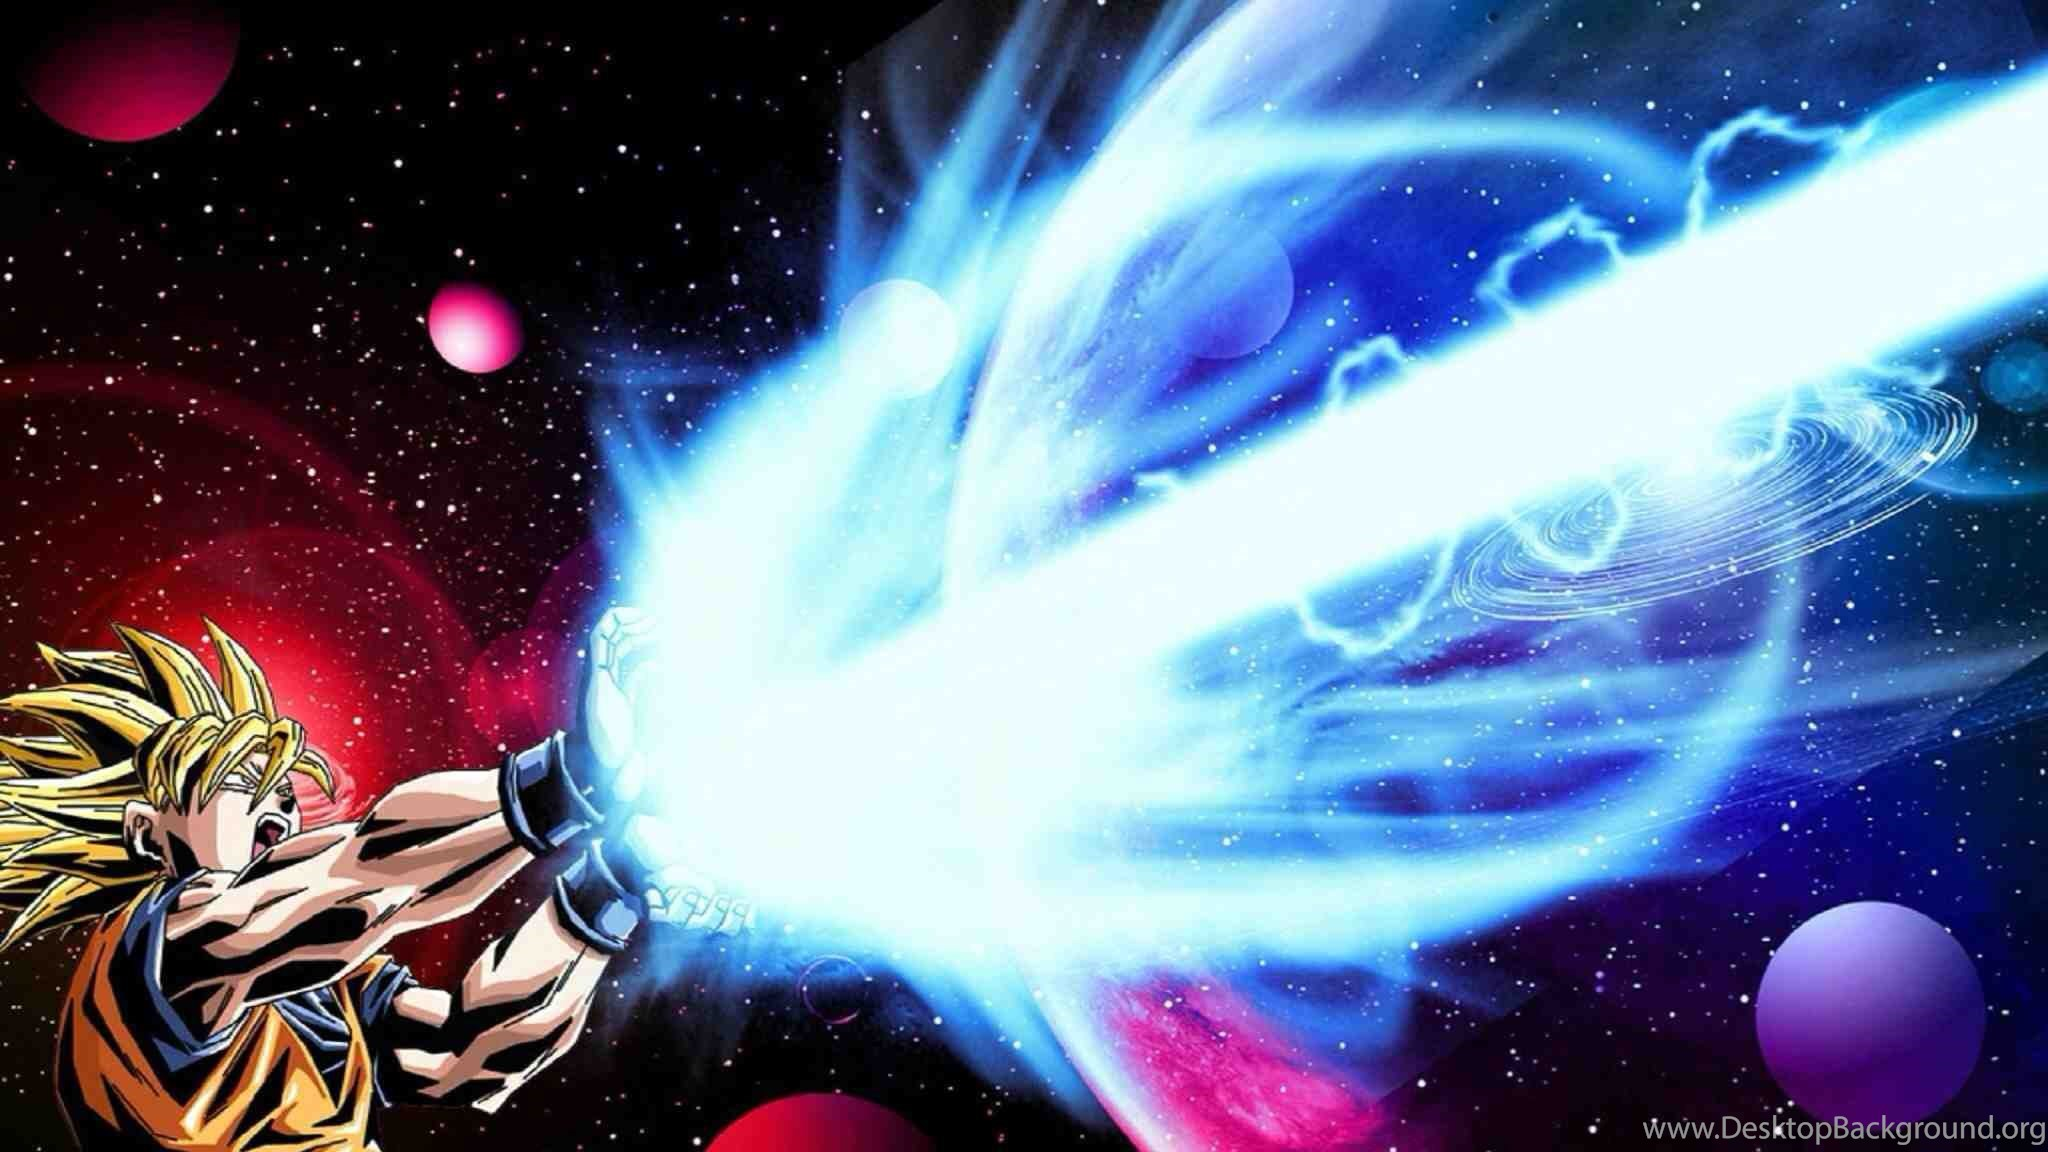 Download Dragon Ball Z Kamehameha Wallpaper Backgrounds Desktop